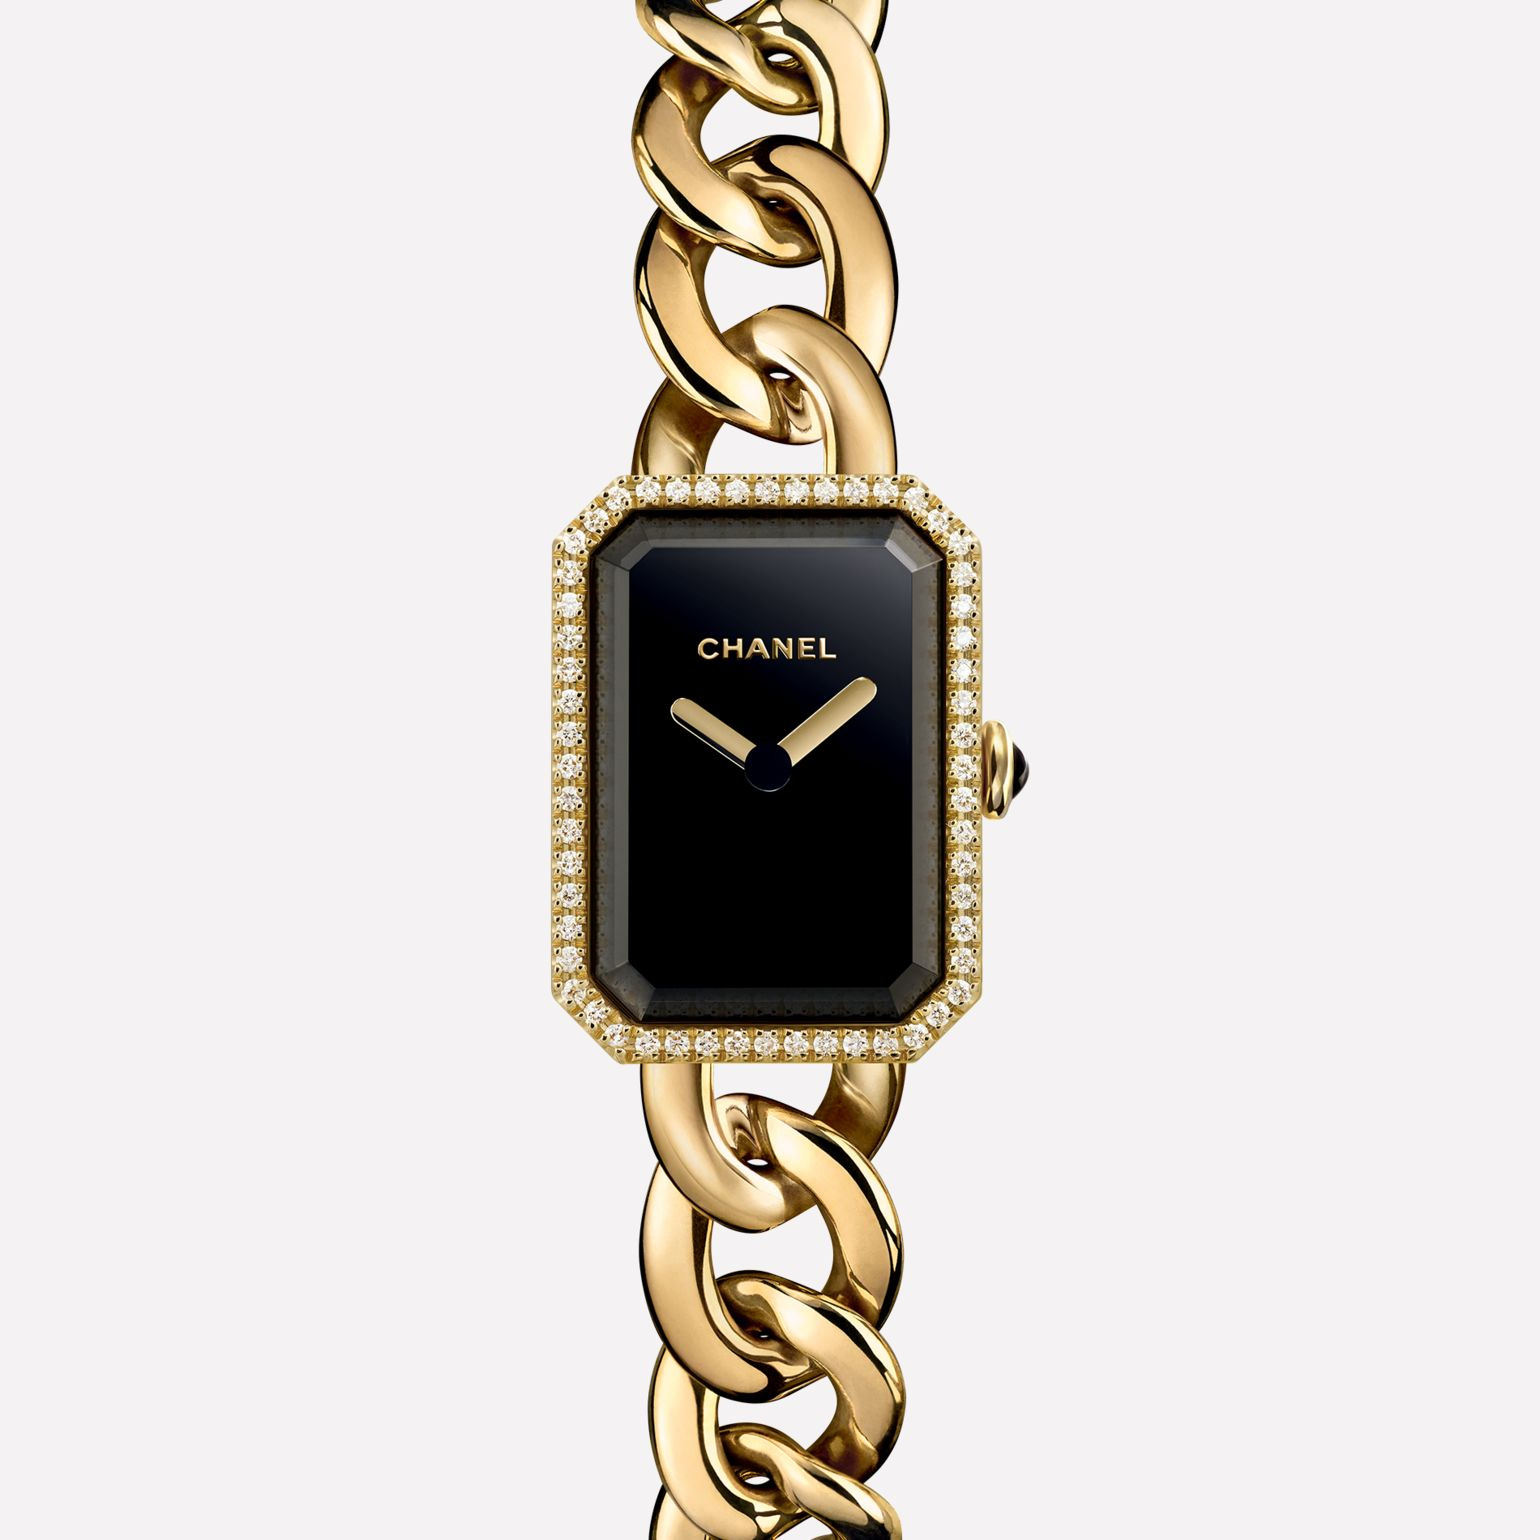 Première Chain Watch Small version, yellow gold and diamonds, black-lacquered dial